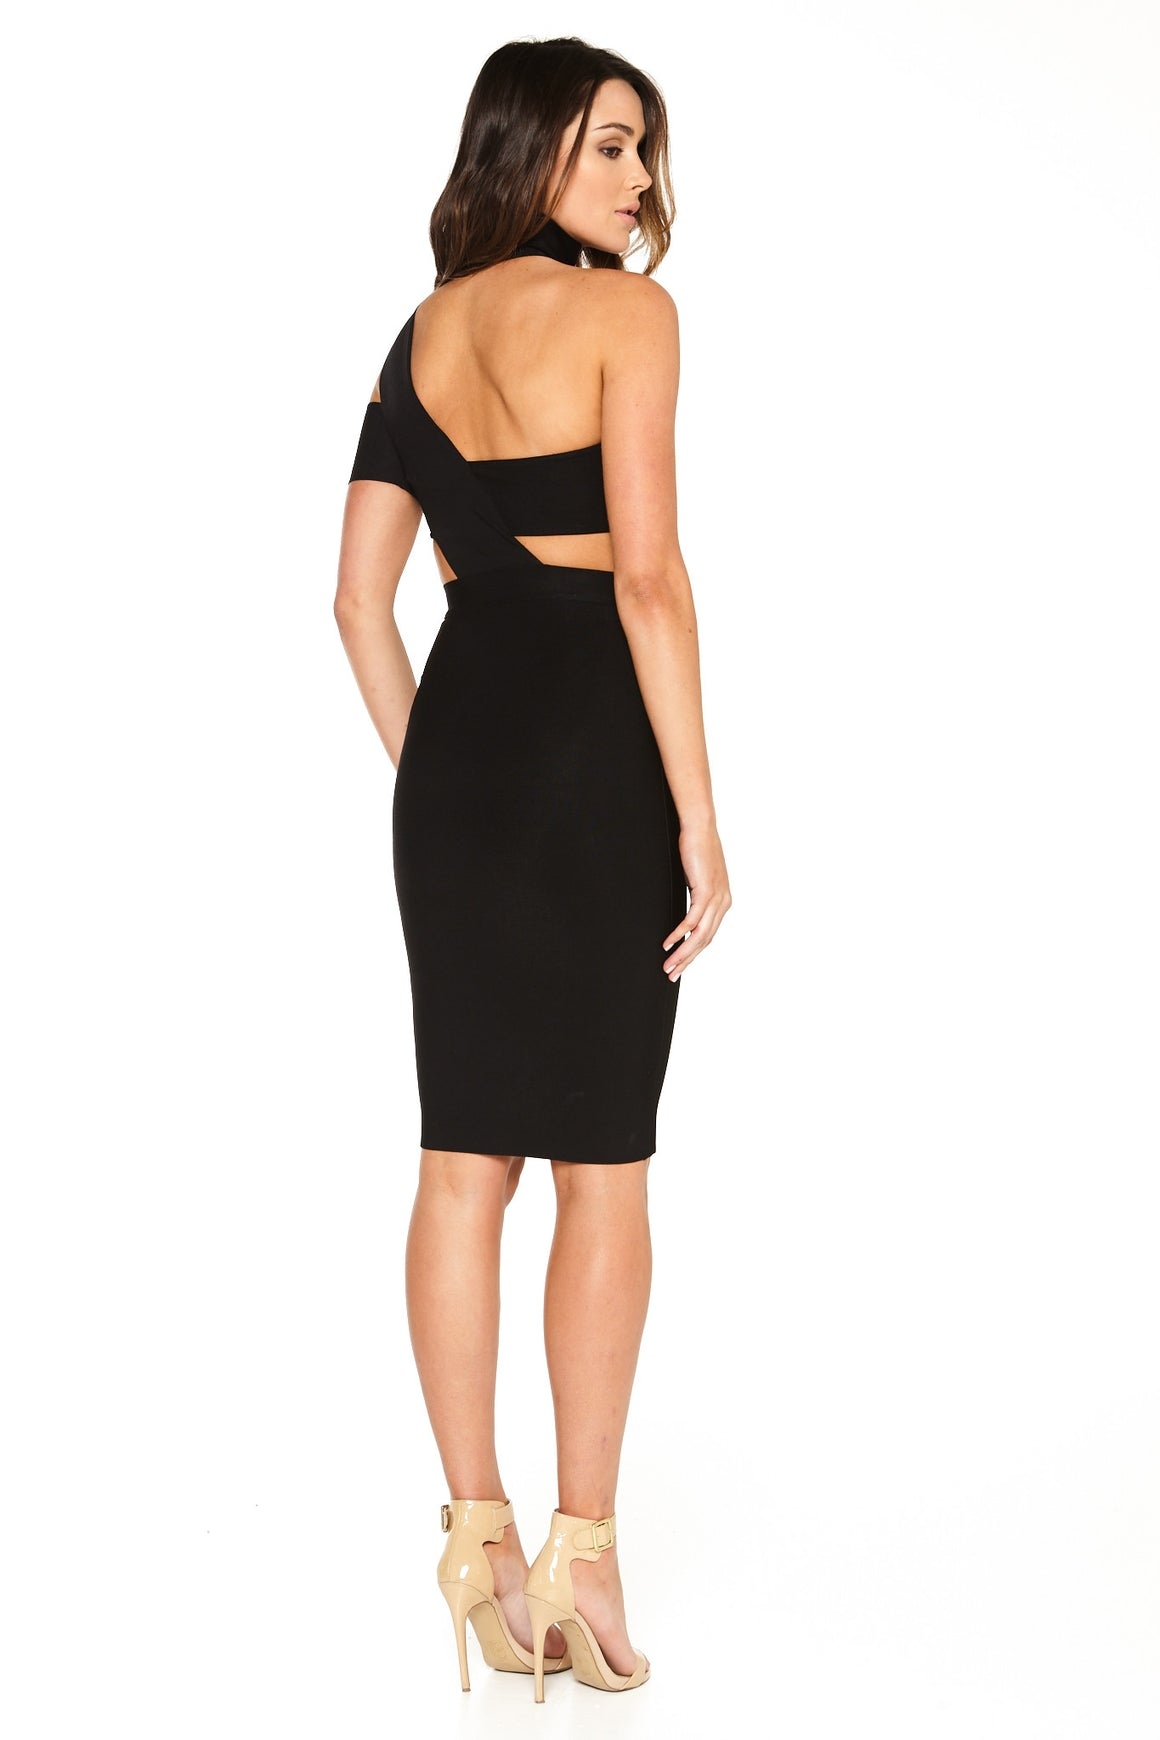 Ella Cutout Bandage Dress - Black [SAMPLE SALE]